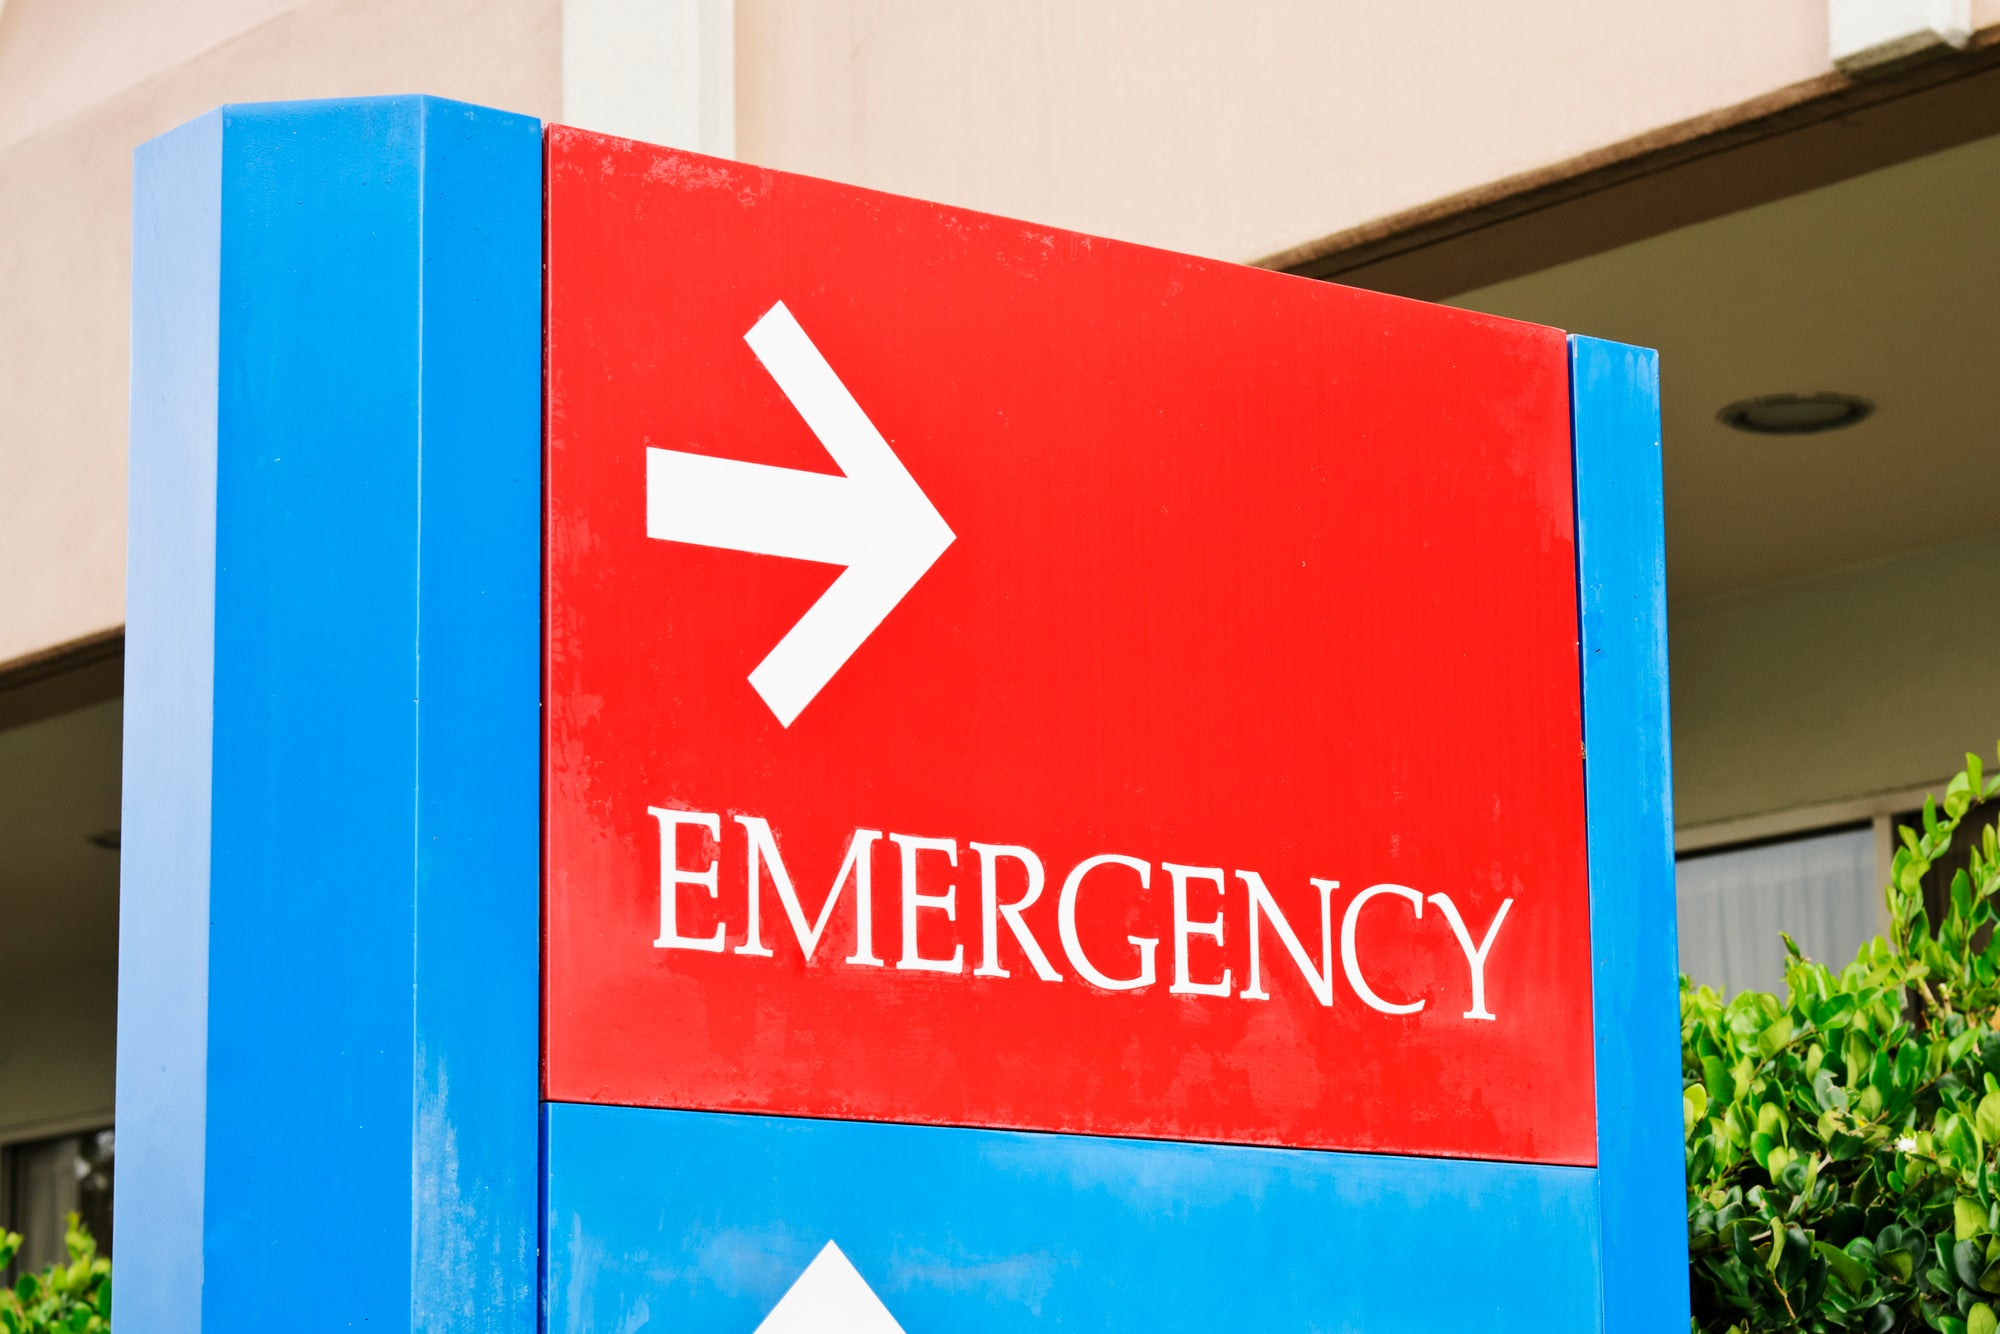 BioMedical-Emergency Rooms